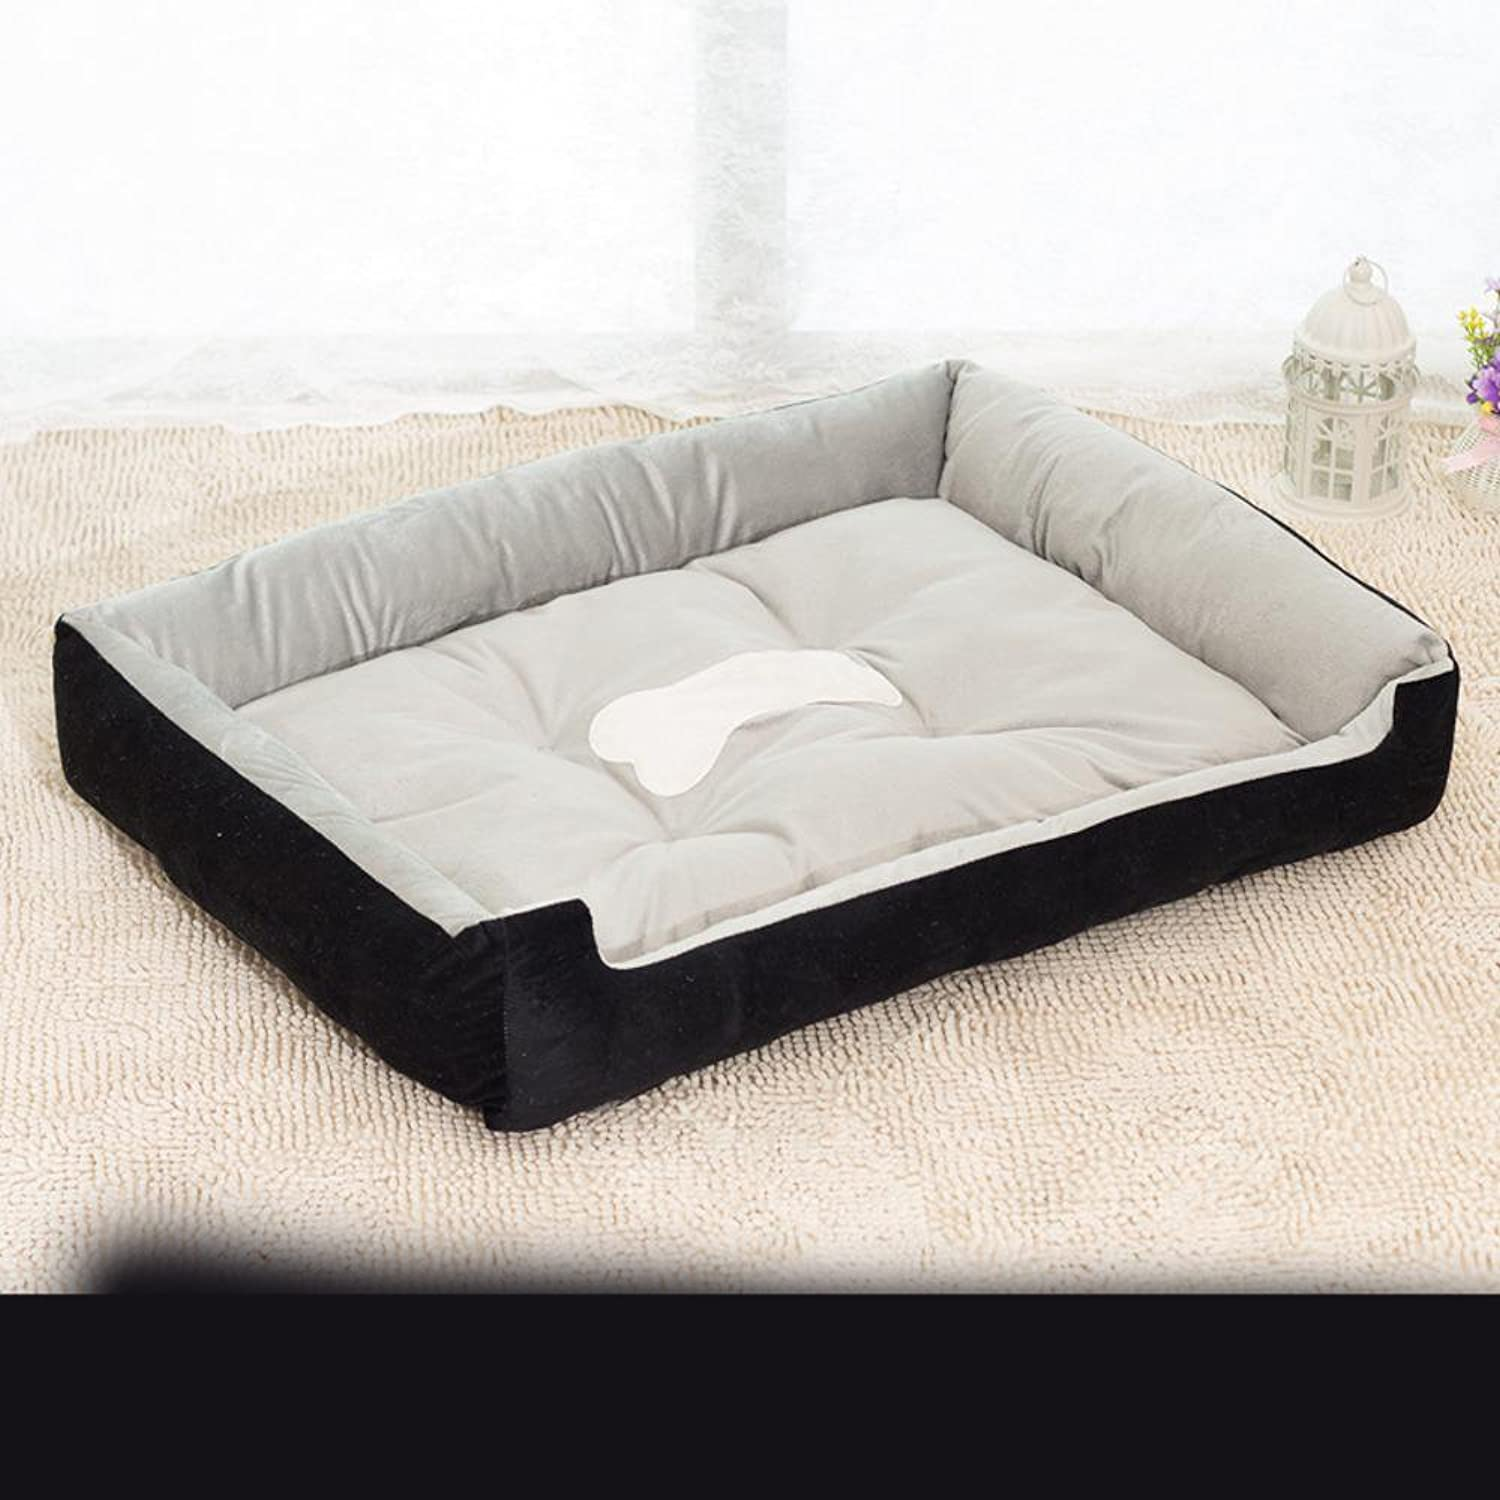 Dixinla Pet Bed Short Plush Large Canine Kennel